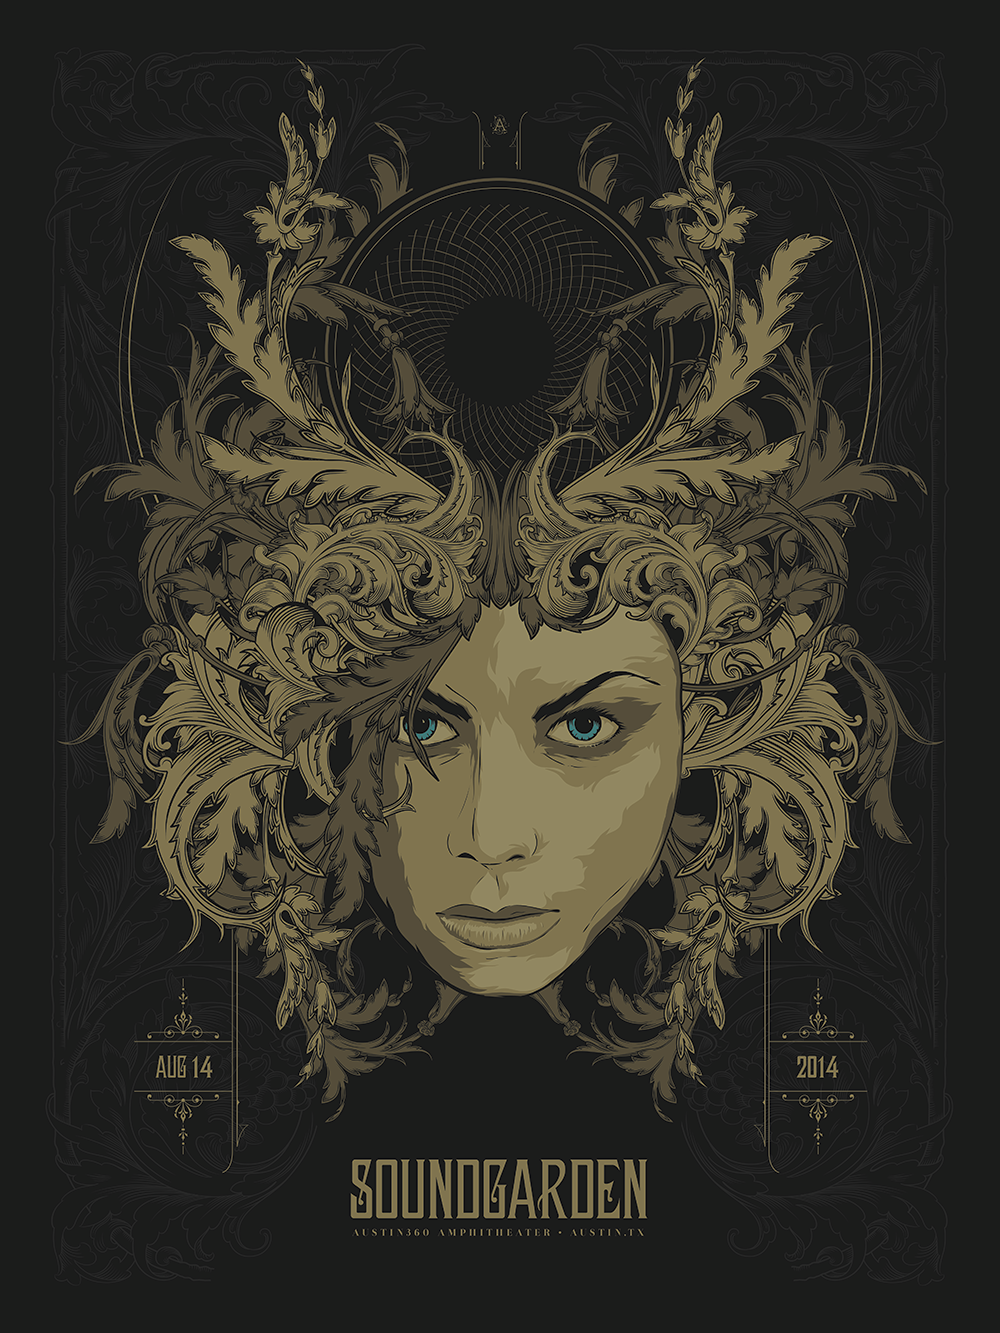 """Soundgarden - Austin, TX 2014"" by Anonymous Ink & Idea.  18"" x 24"" 5-color Screenprint.  Ed of 225 S/N.  $35"